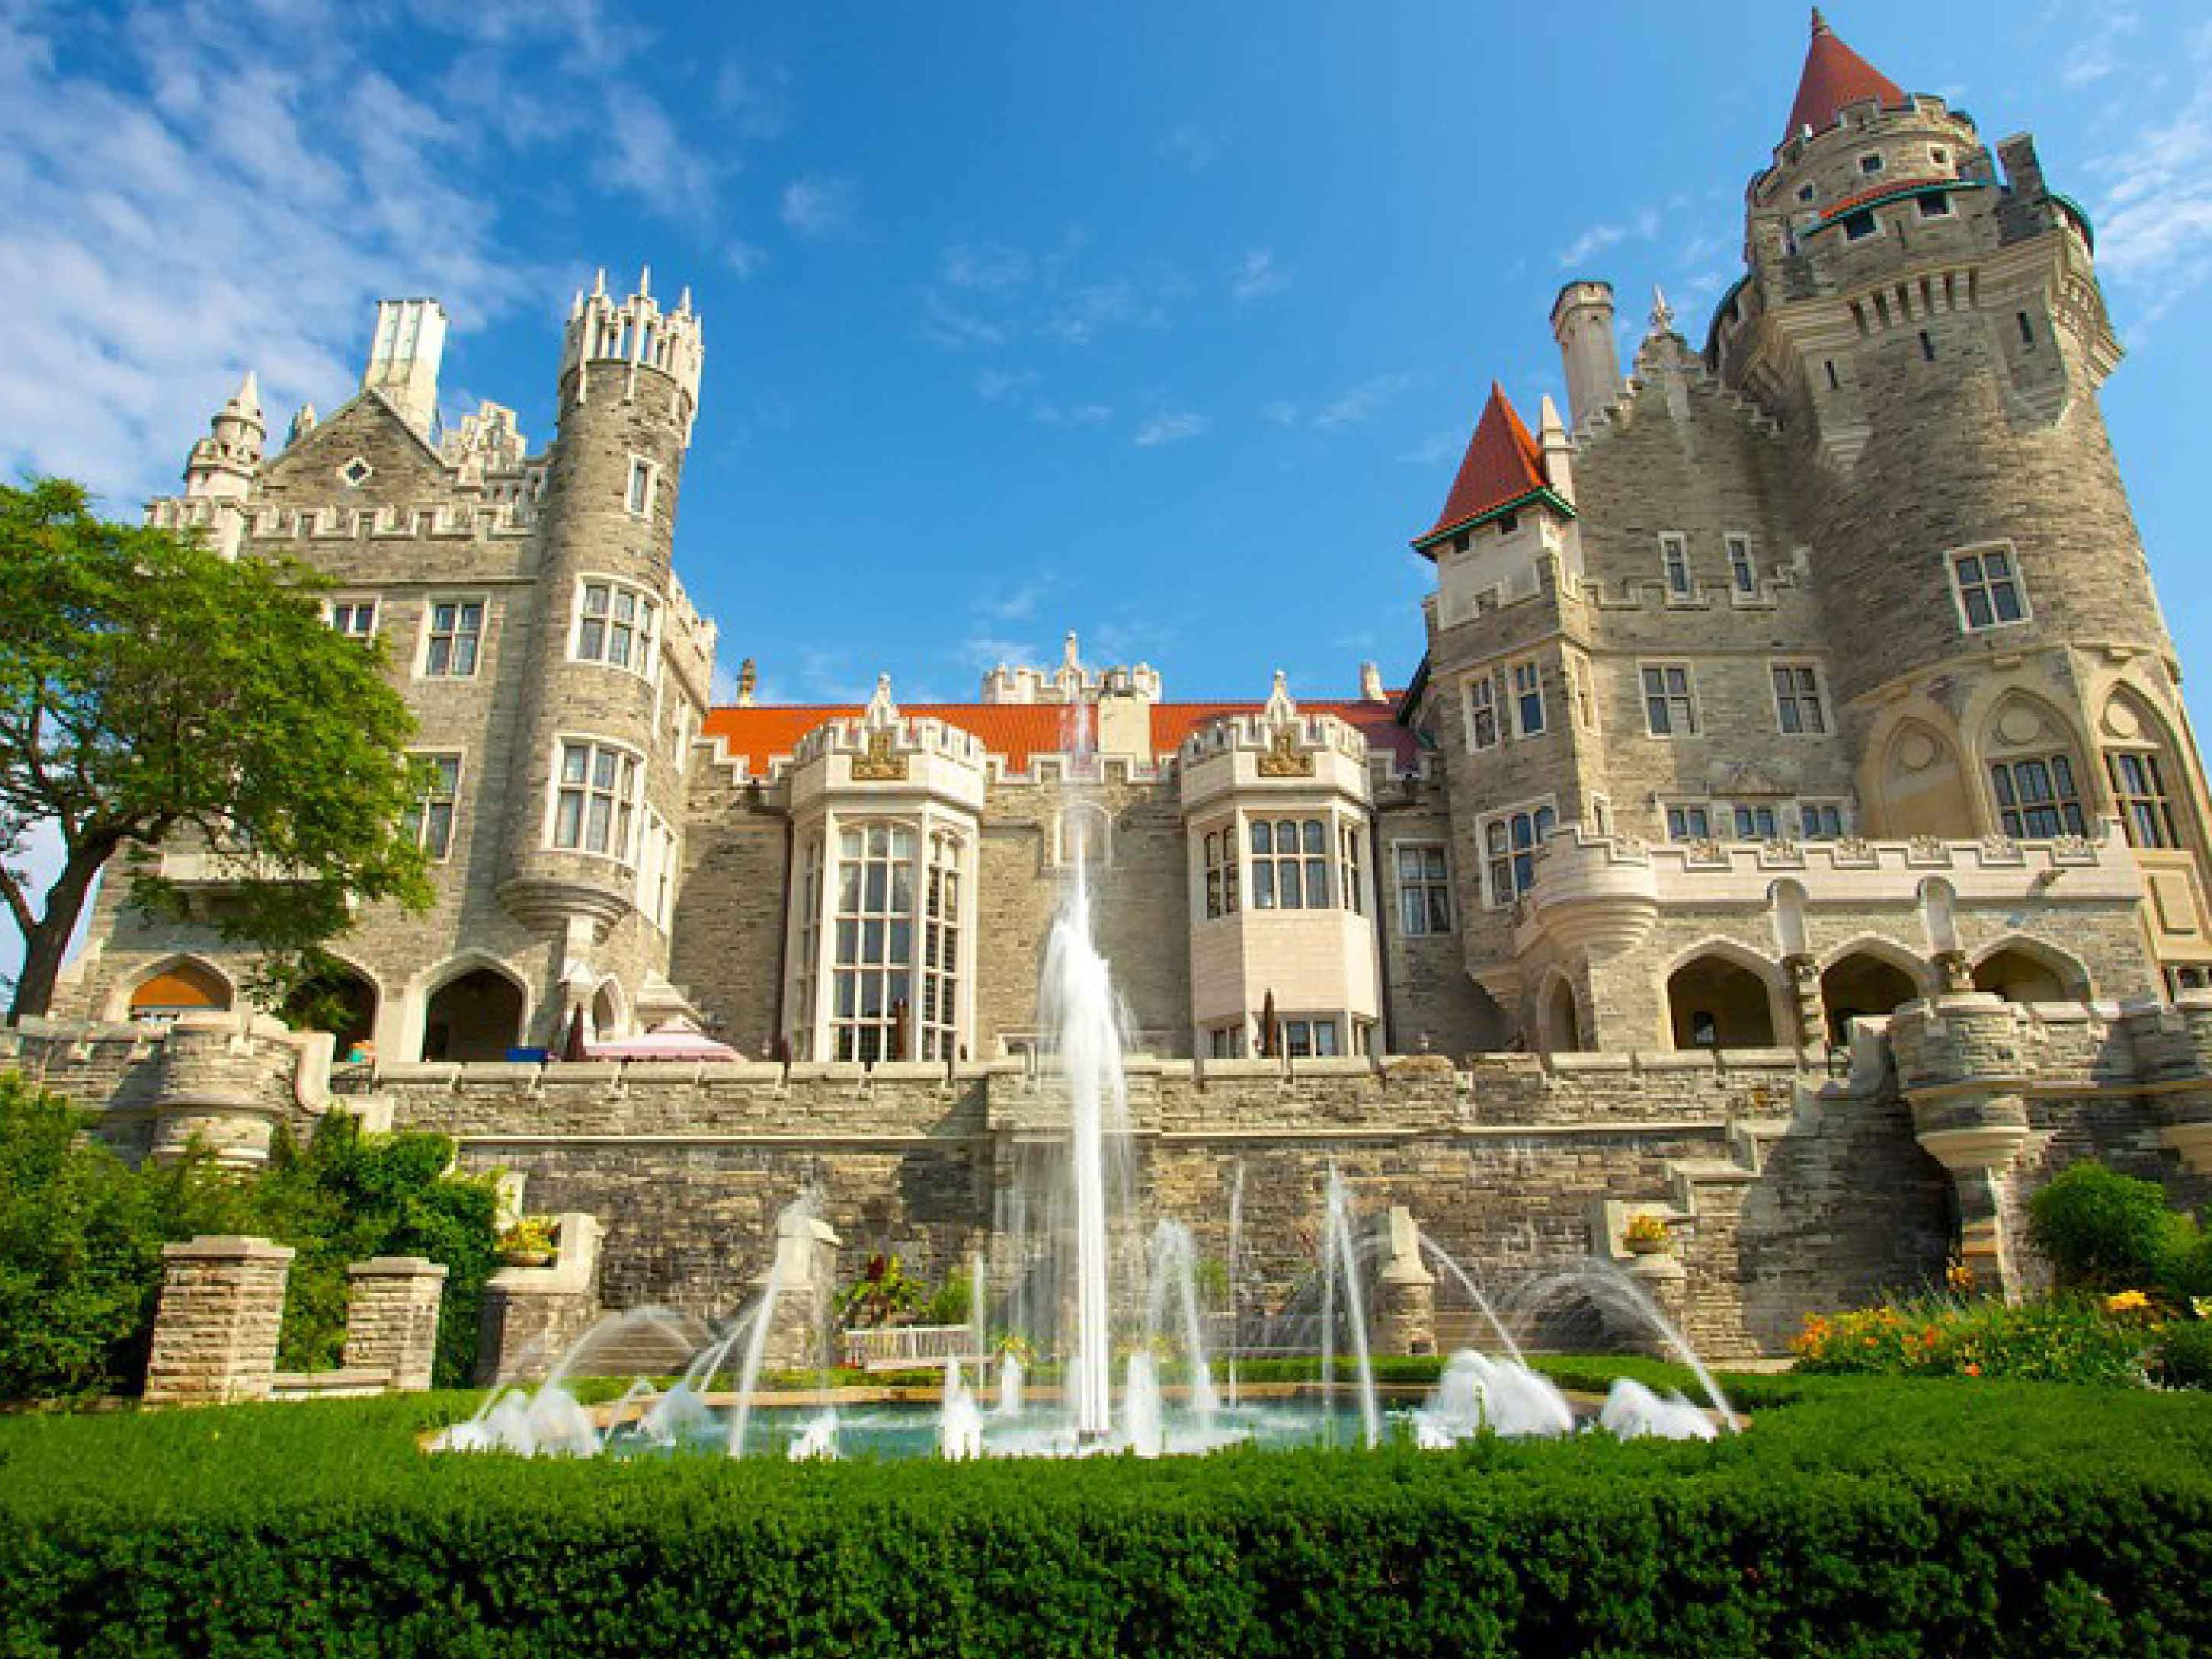 Nearby Casa Loma - North America's only castle located in Toronto